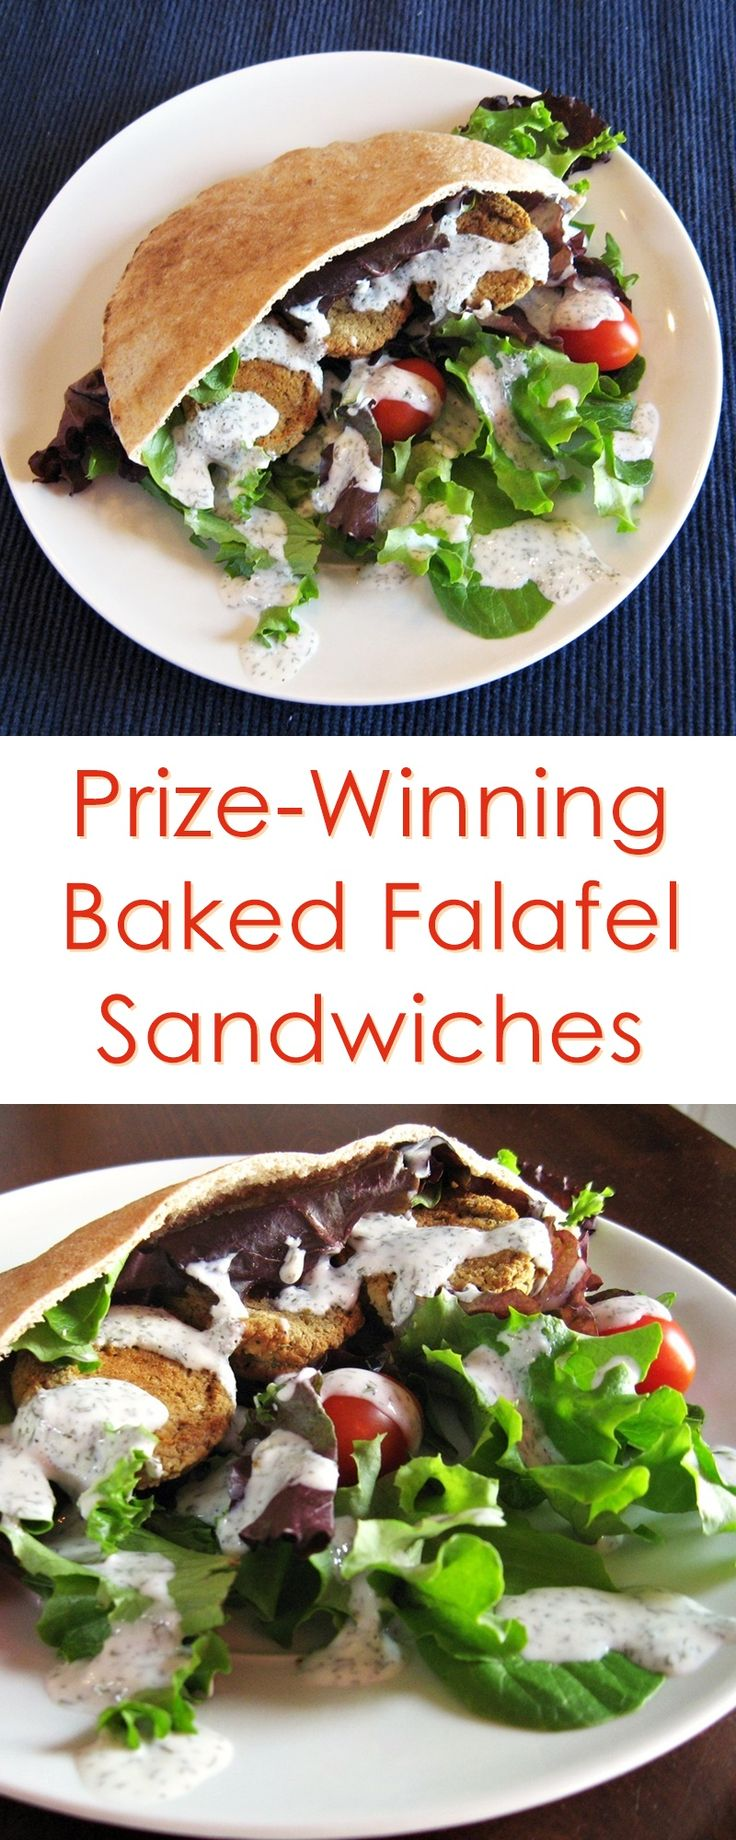 Baked Falafel Sandwiches with Creamy Dairy-Free Yogurt Sauce (vegan, soy-free, gluten-free option)